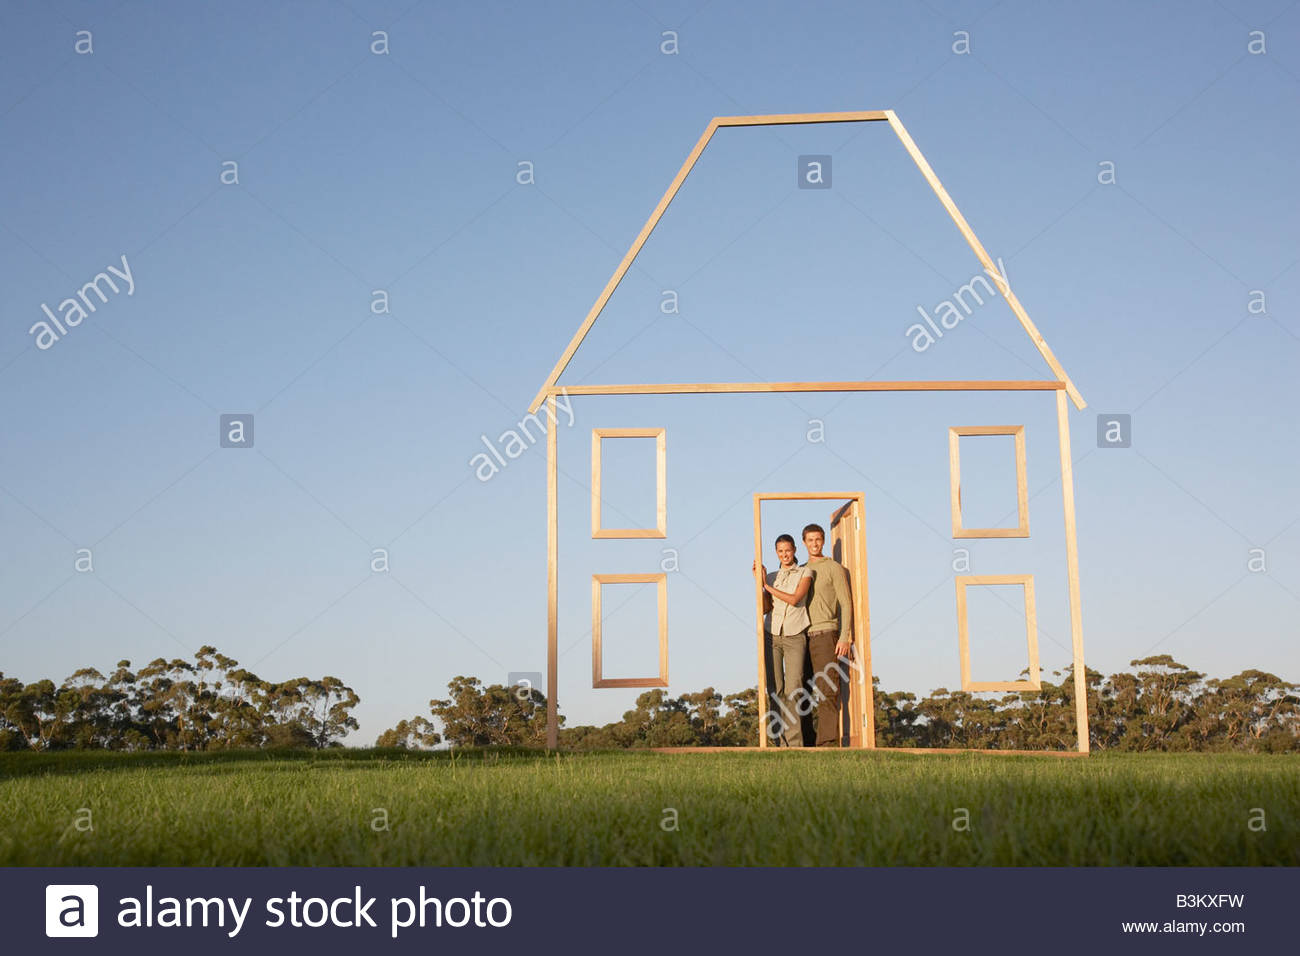 Couple in doorway of house outline - Stock Image